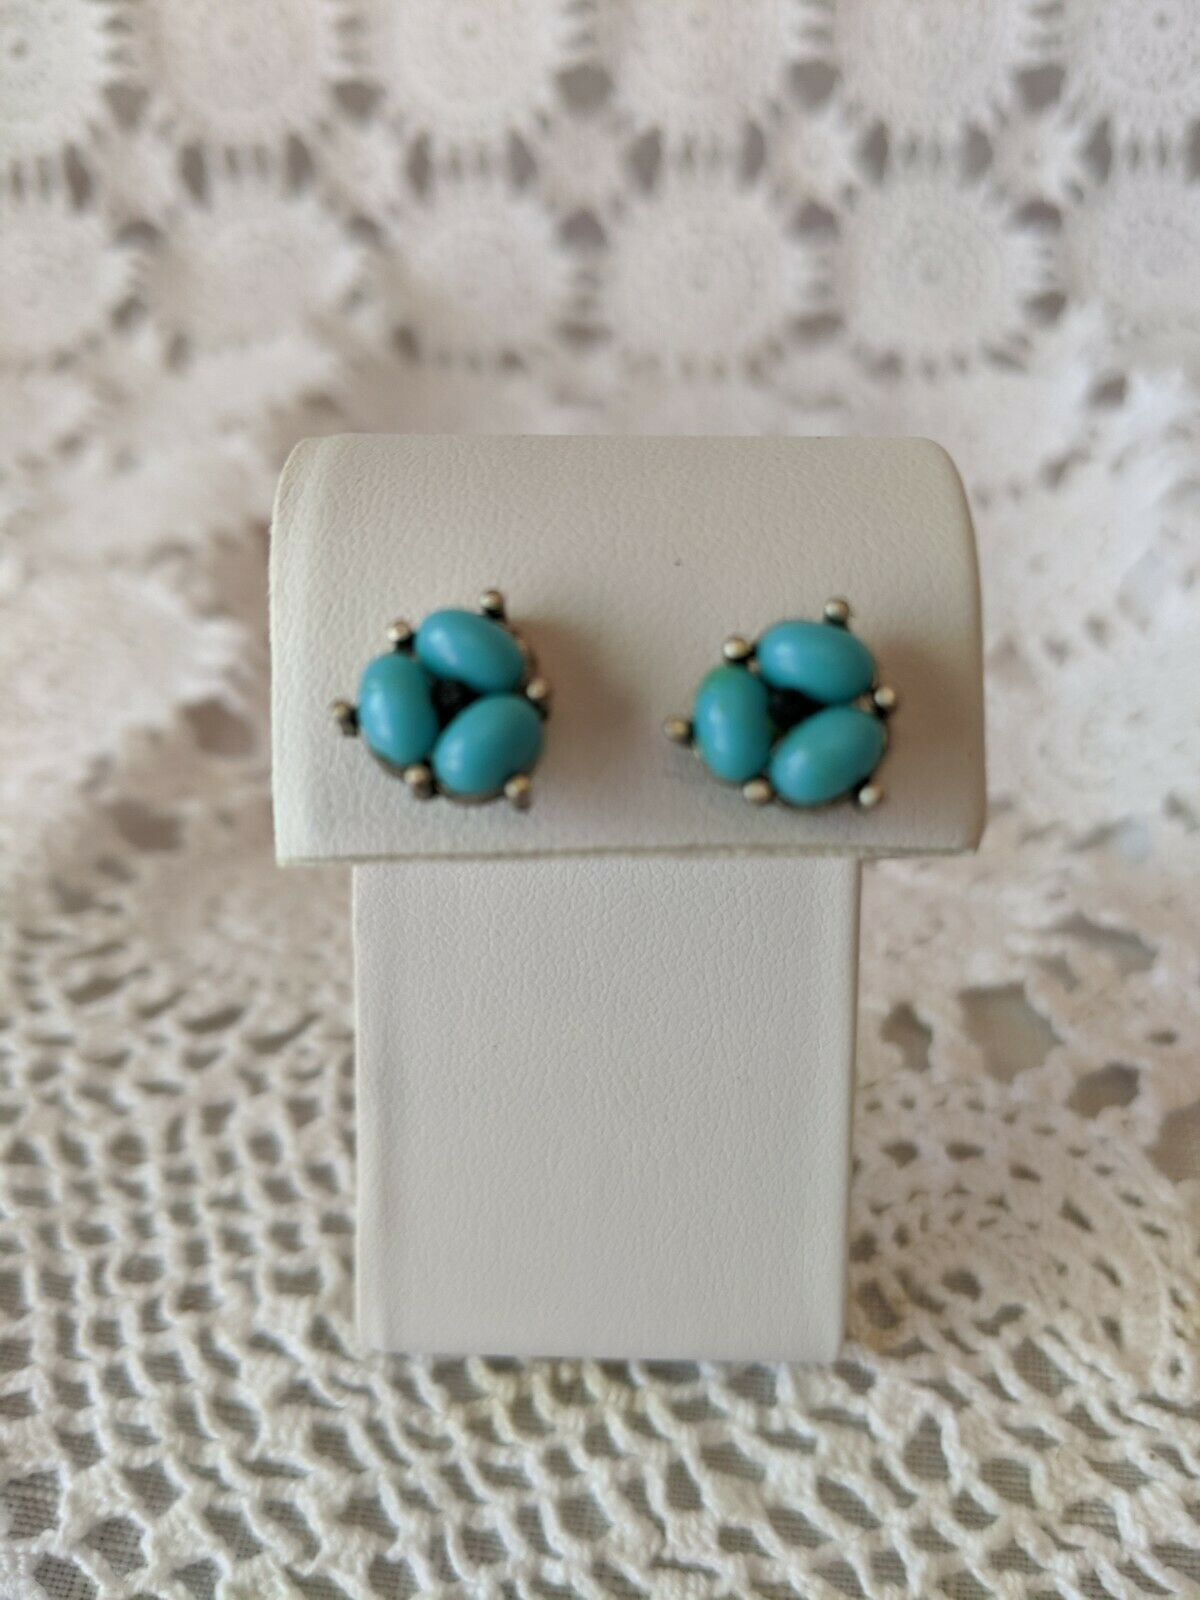 Primary image for Ladies Silver Tone Turquoise Stone Pierced Stud Earrings